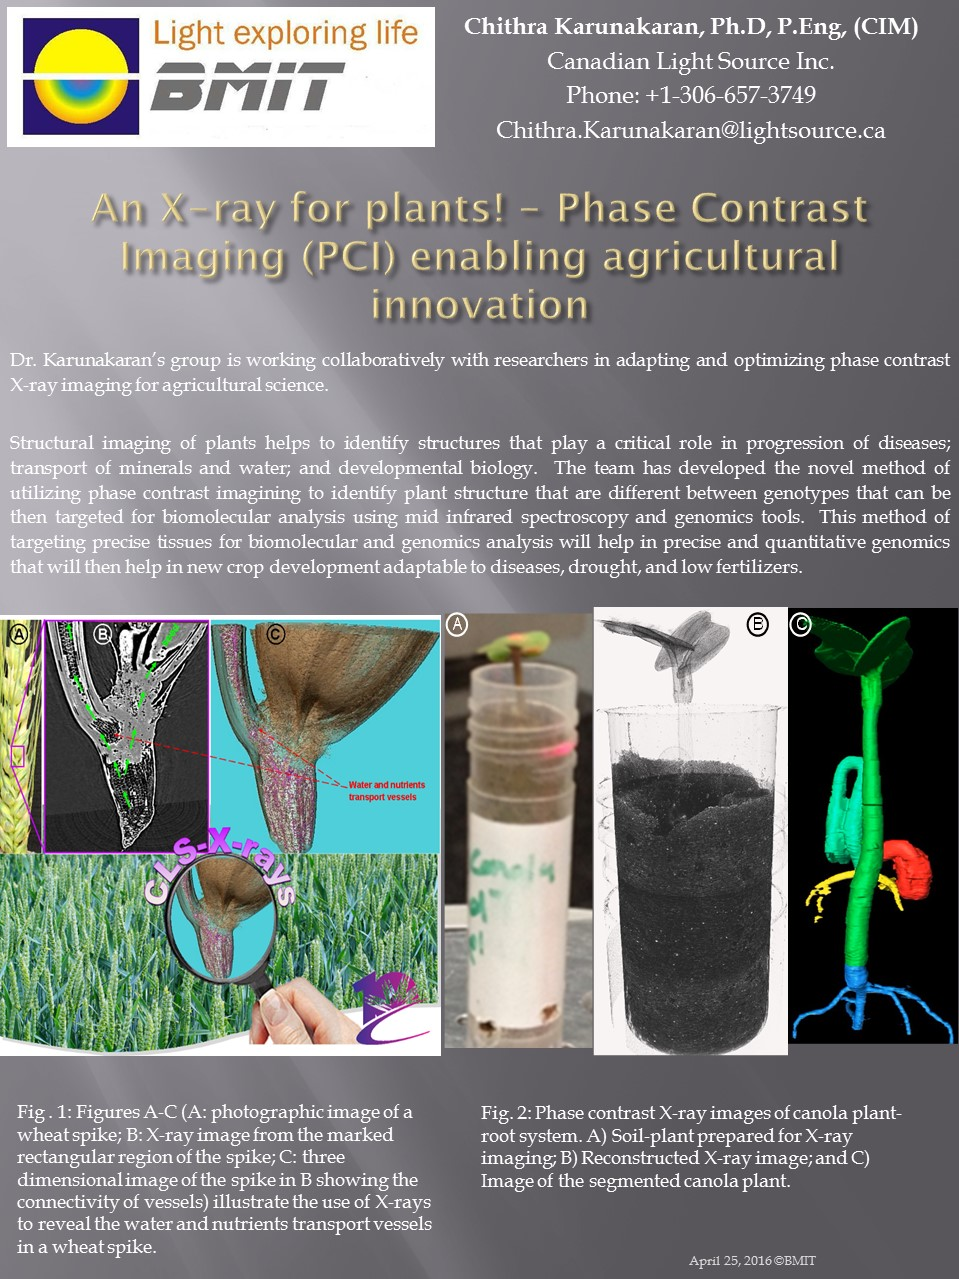 Phase Contrast Imaging (PCI) enabling agricultural innovation Image